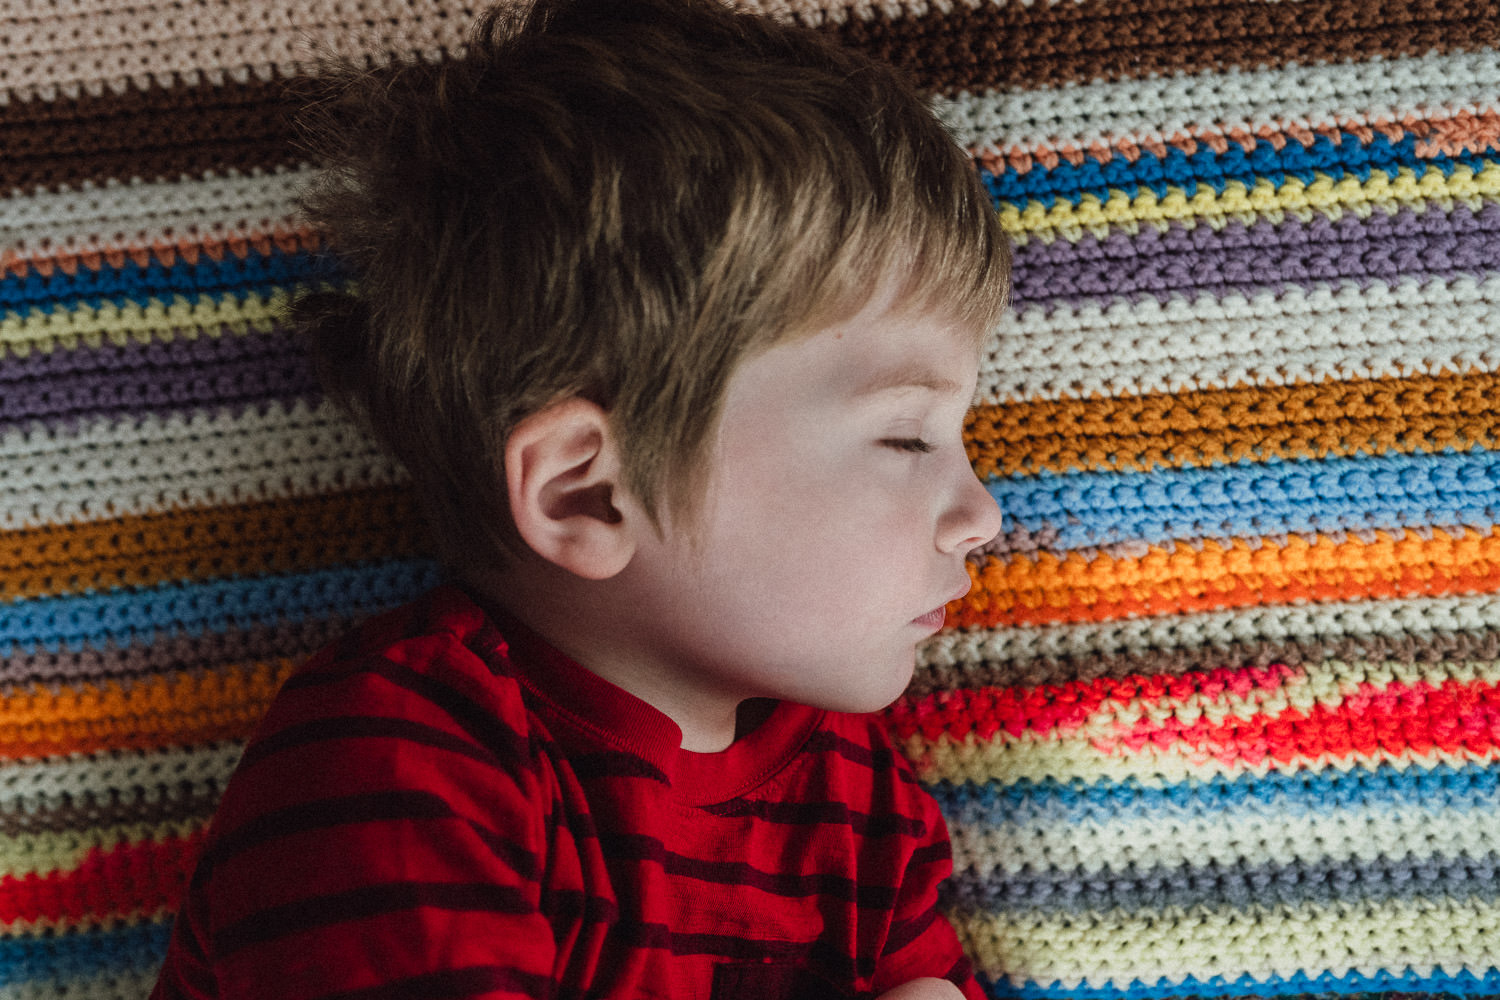 A little boy lies on a striped blanket.